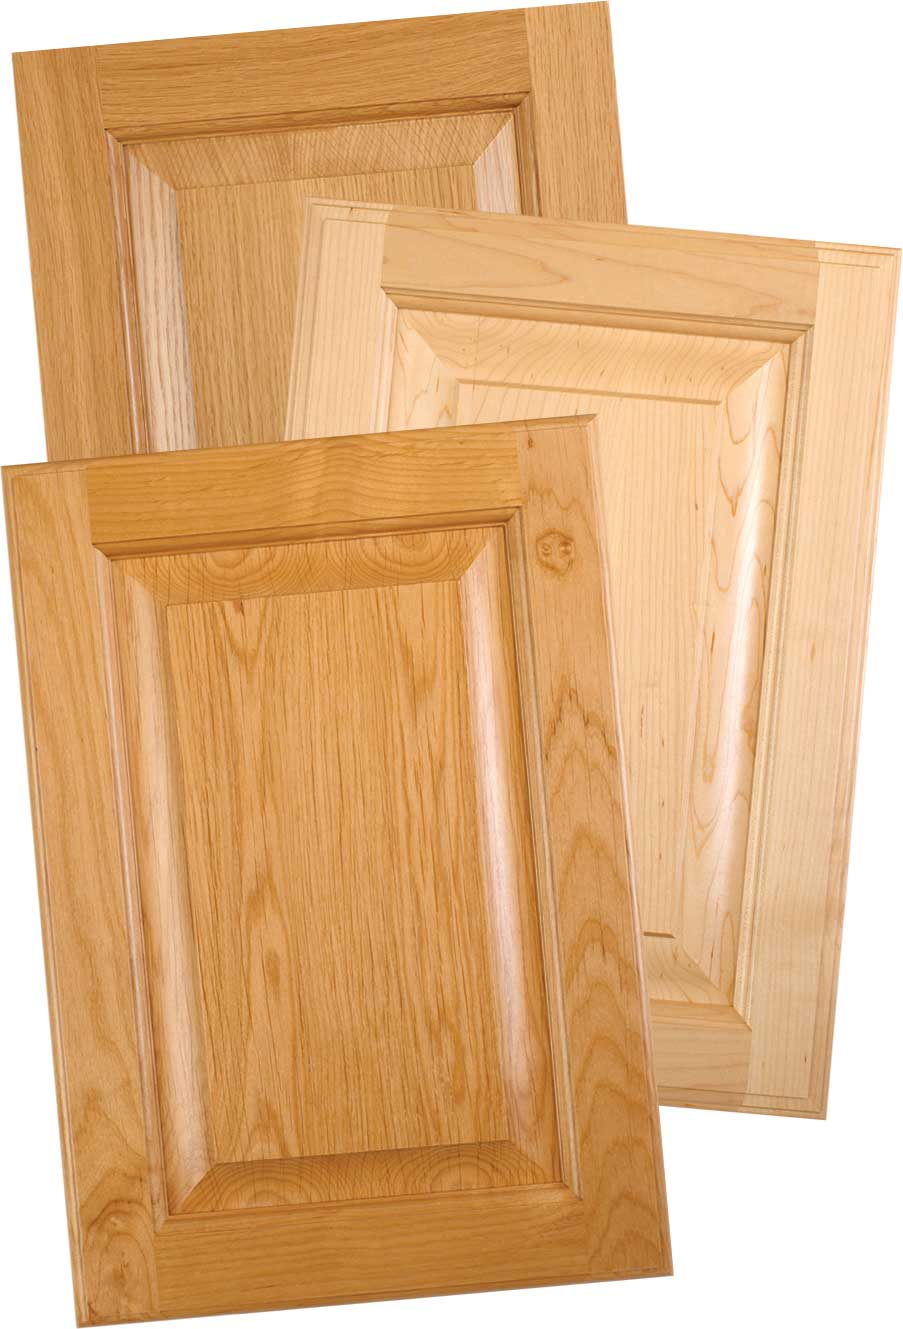 Taylorcraft cabinet door company introduces 1 thick for Door companies